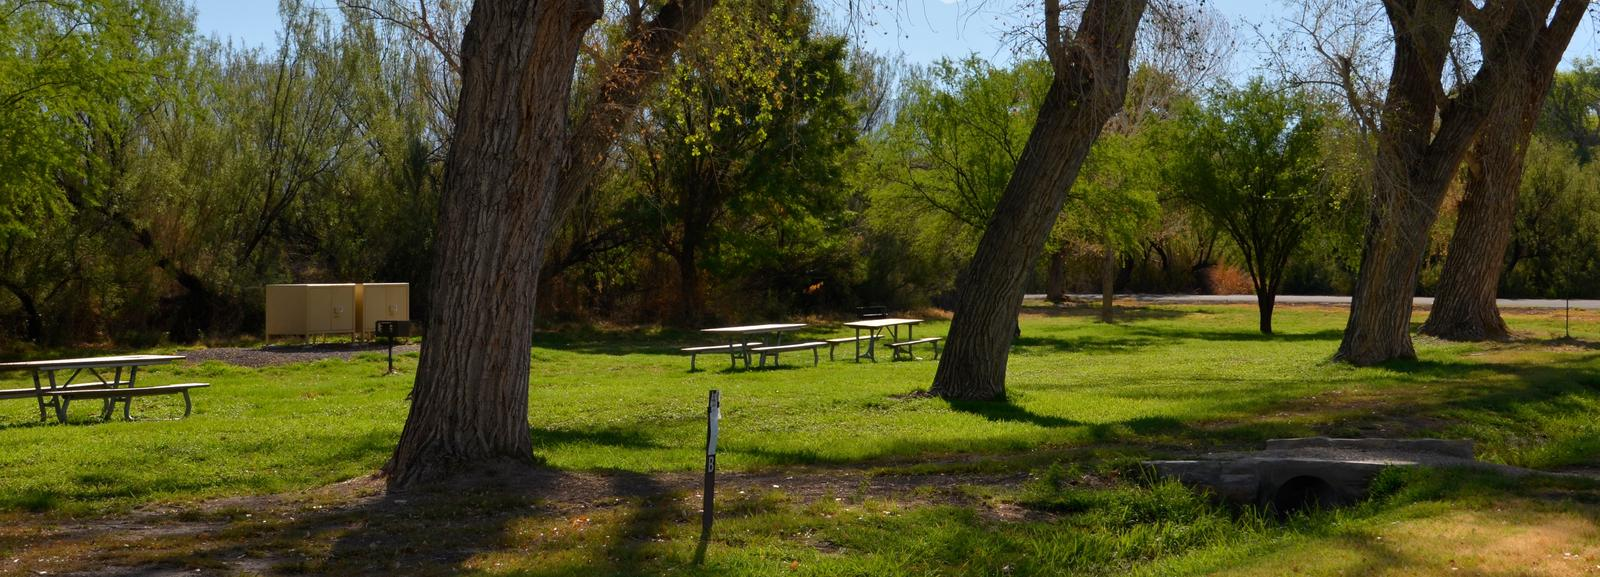 Tree-lined road through the campsiteCampsite B with trees, picnic tables and bear boxes